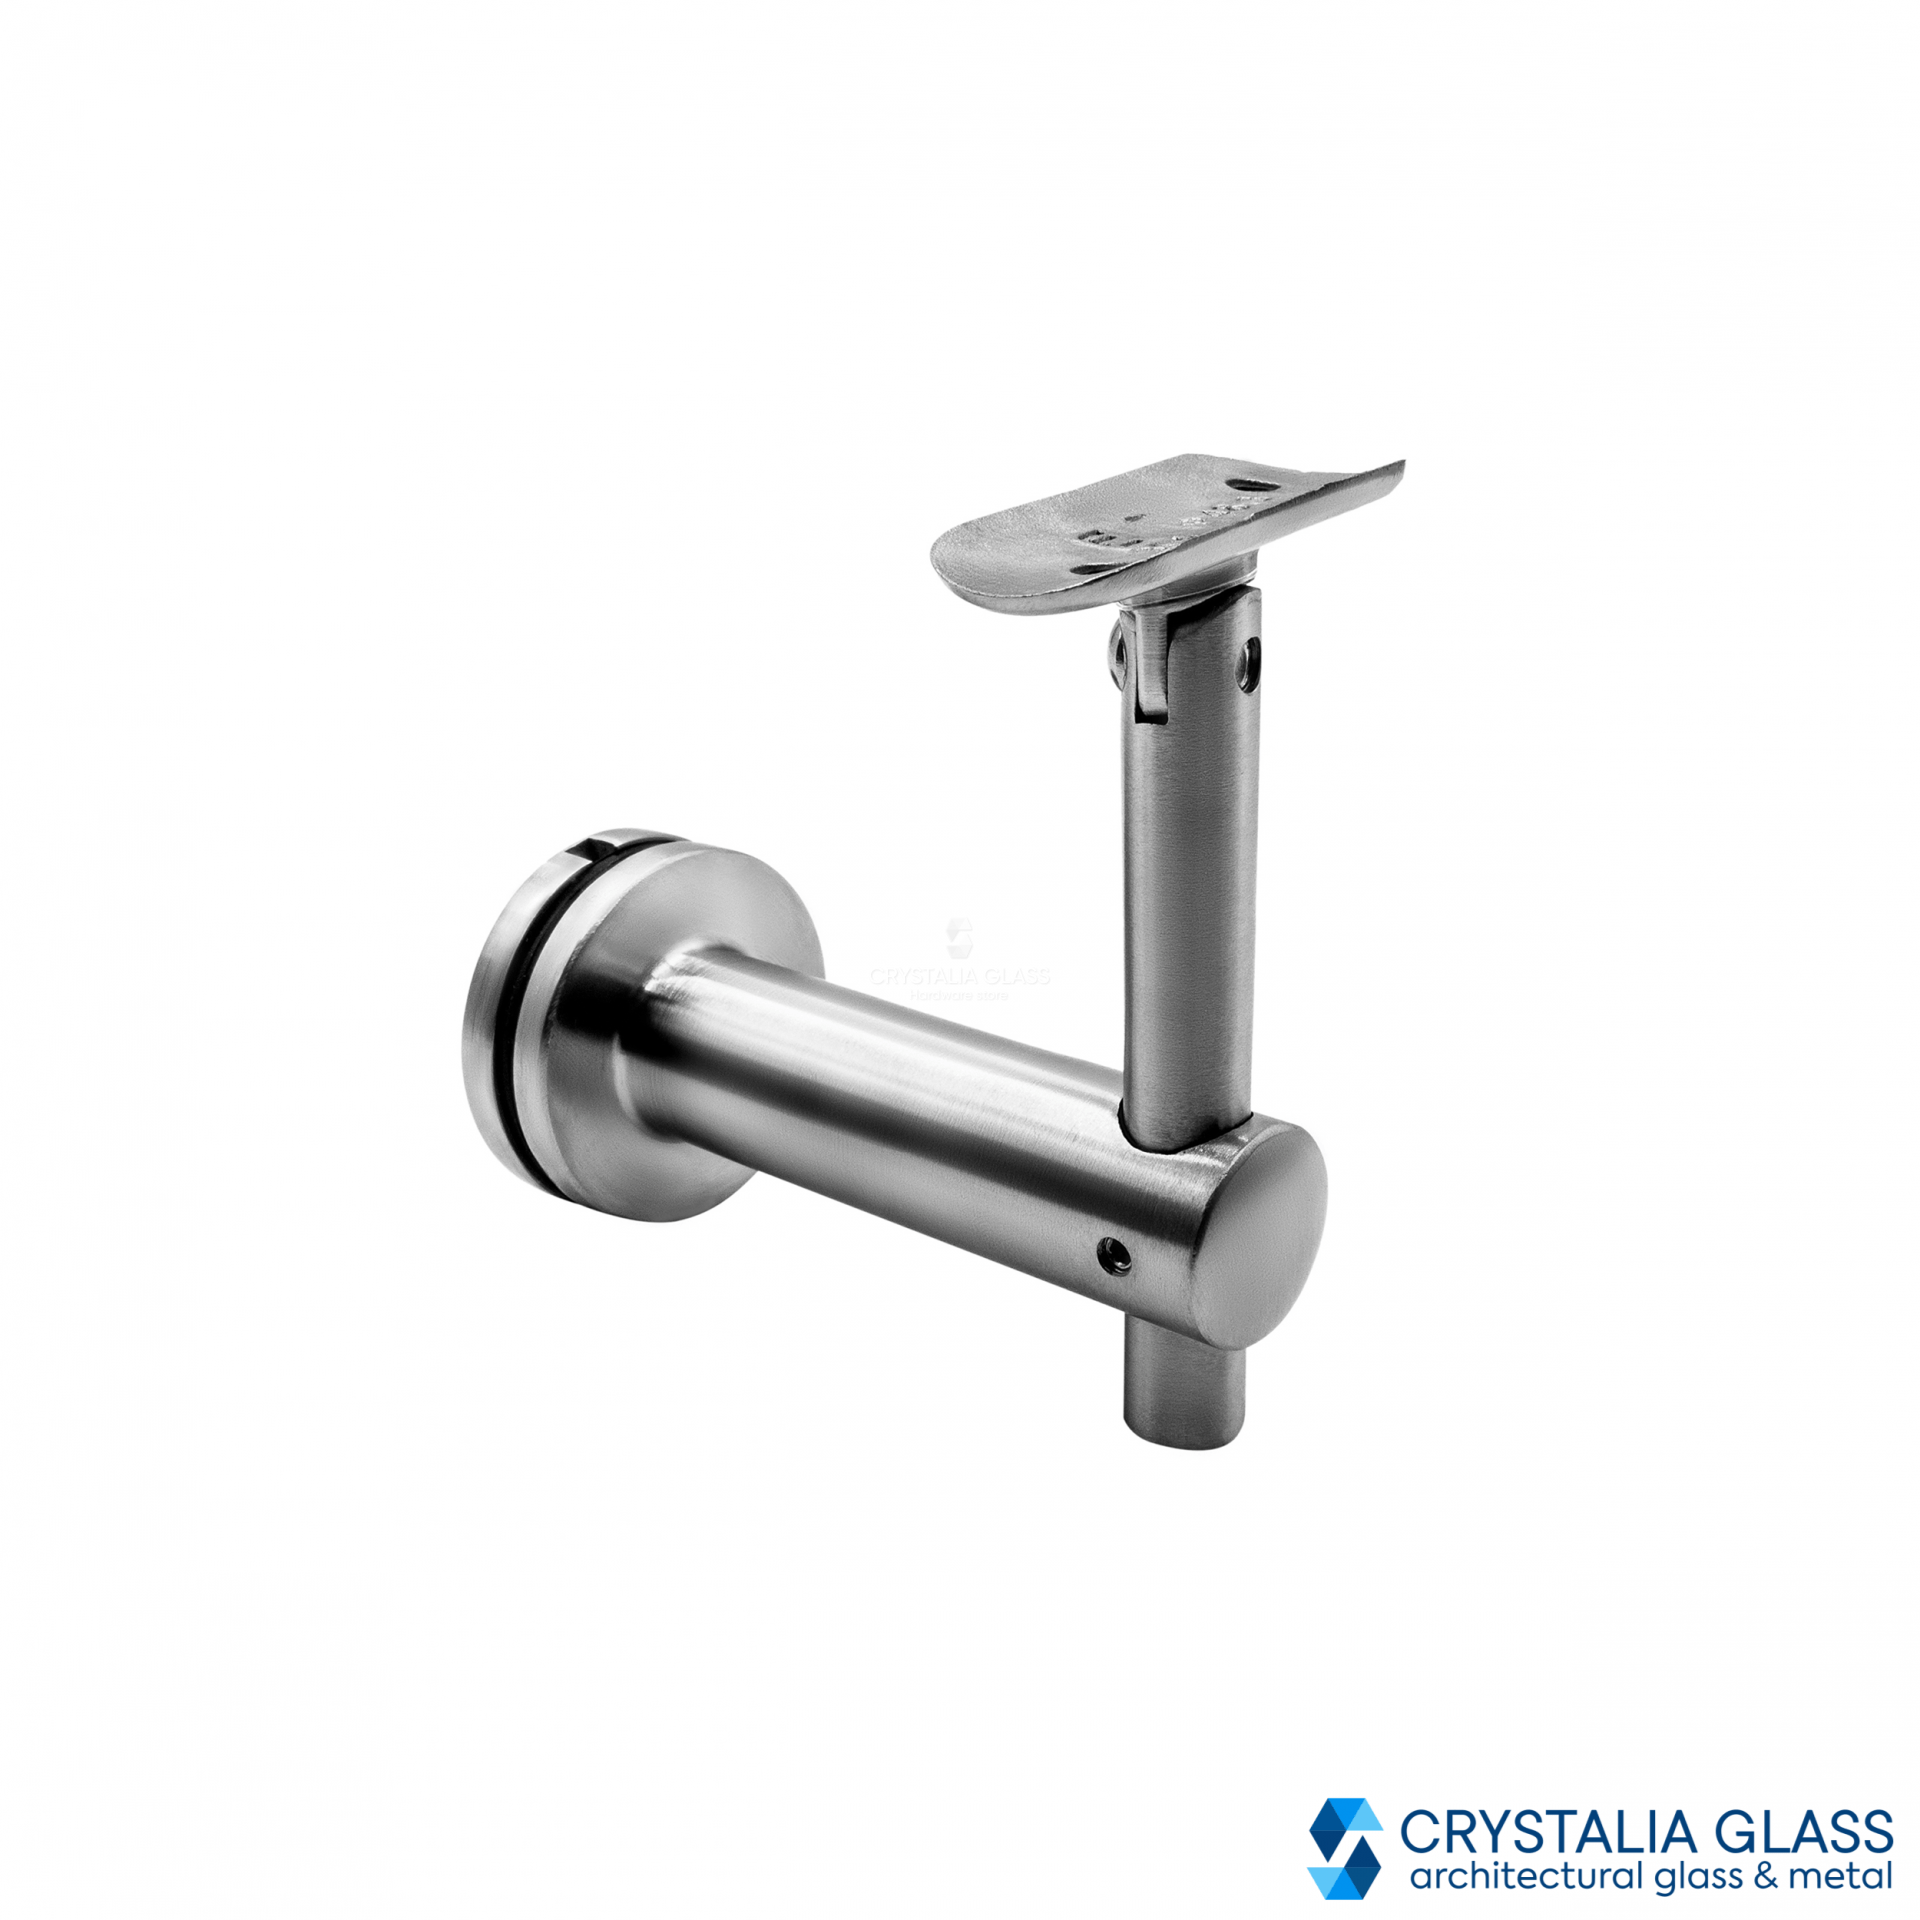 CG Brushed Stainless Glass Mounted Hand Rail Bracket